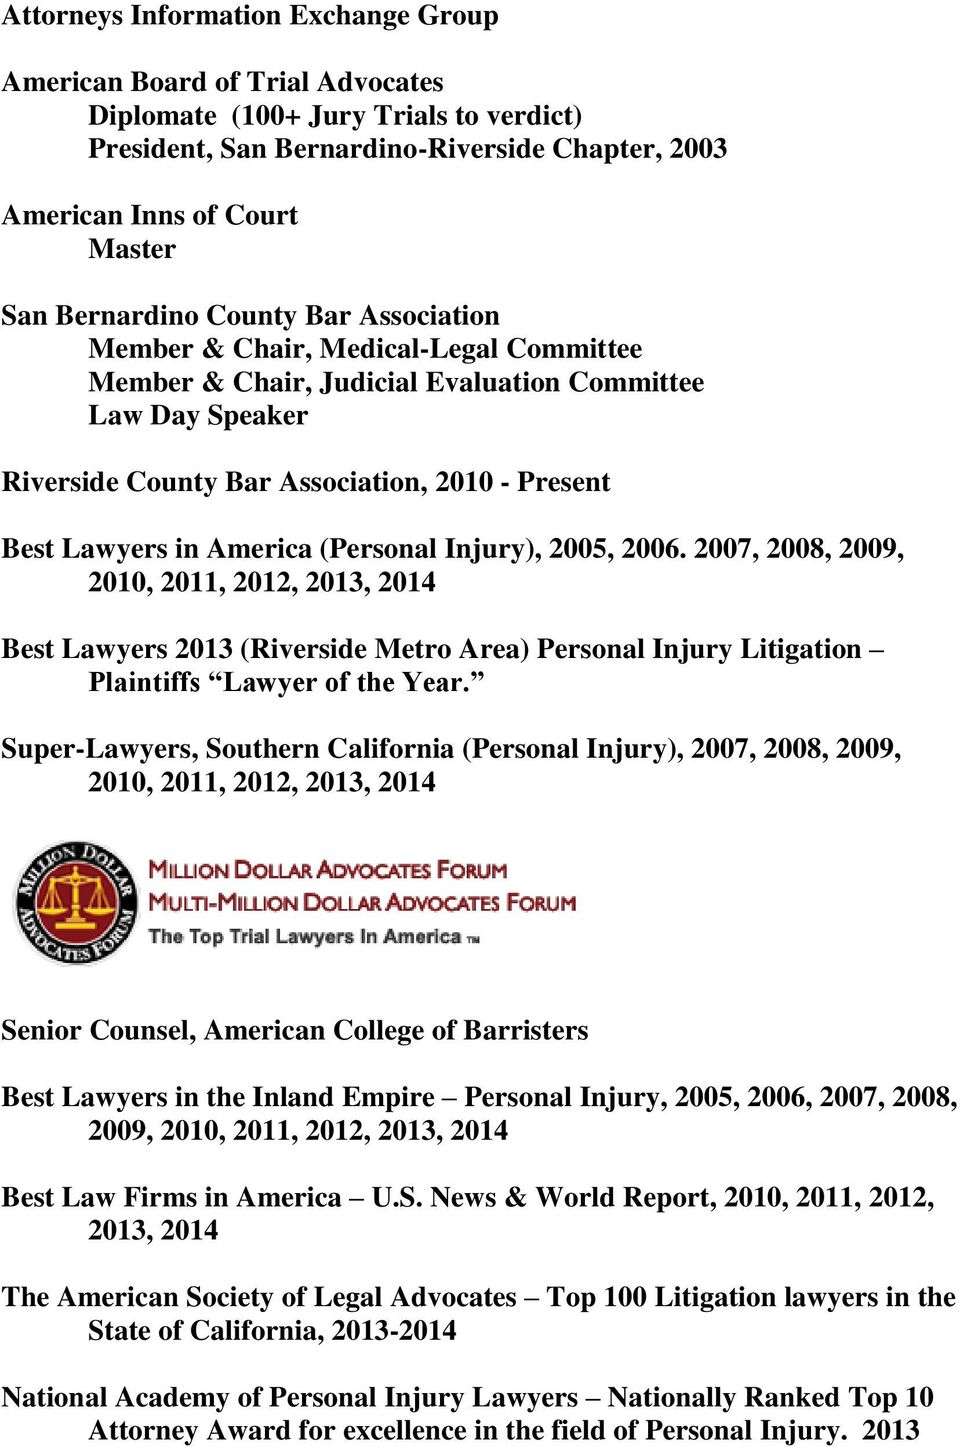 in America (Personal Injury), 2005, 2006. 2007, 2008, 2009, 2010, 2011, 2012, 2013, 2014 Best Lawyers 2013 (Riverside Metro Area) Personal Injury Litigation Plaintiffs Lawyer of the Year.